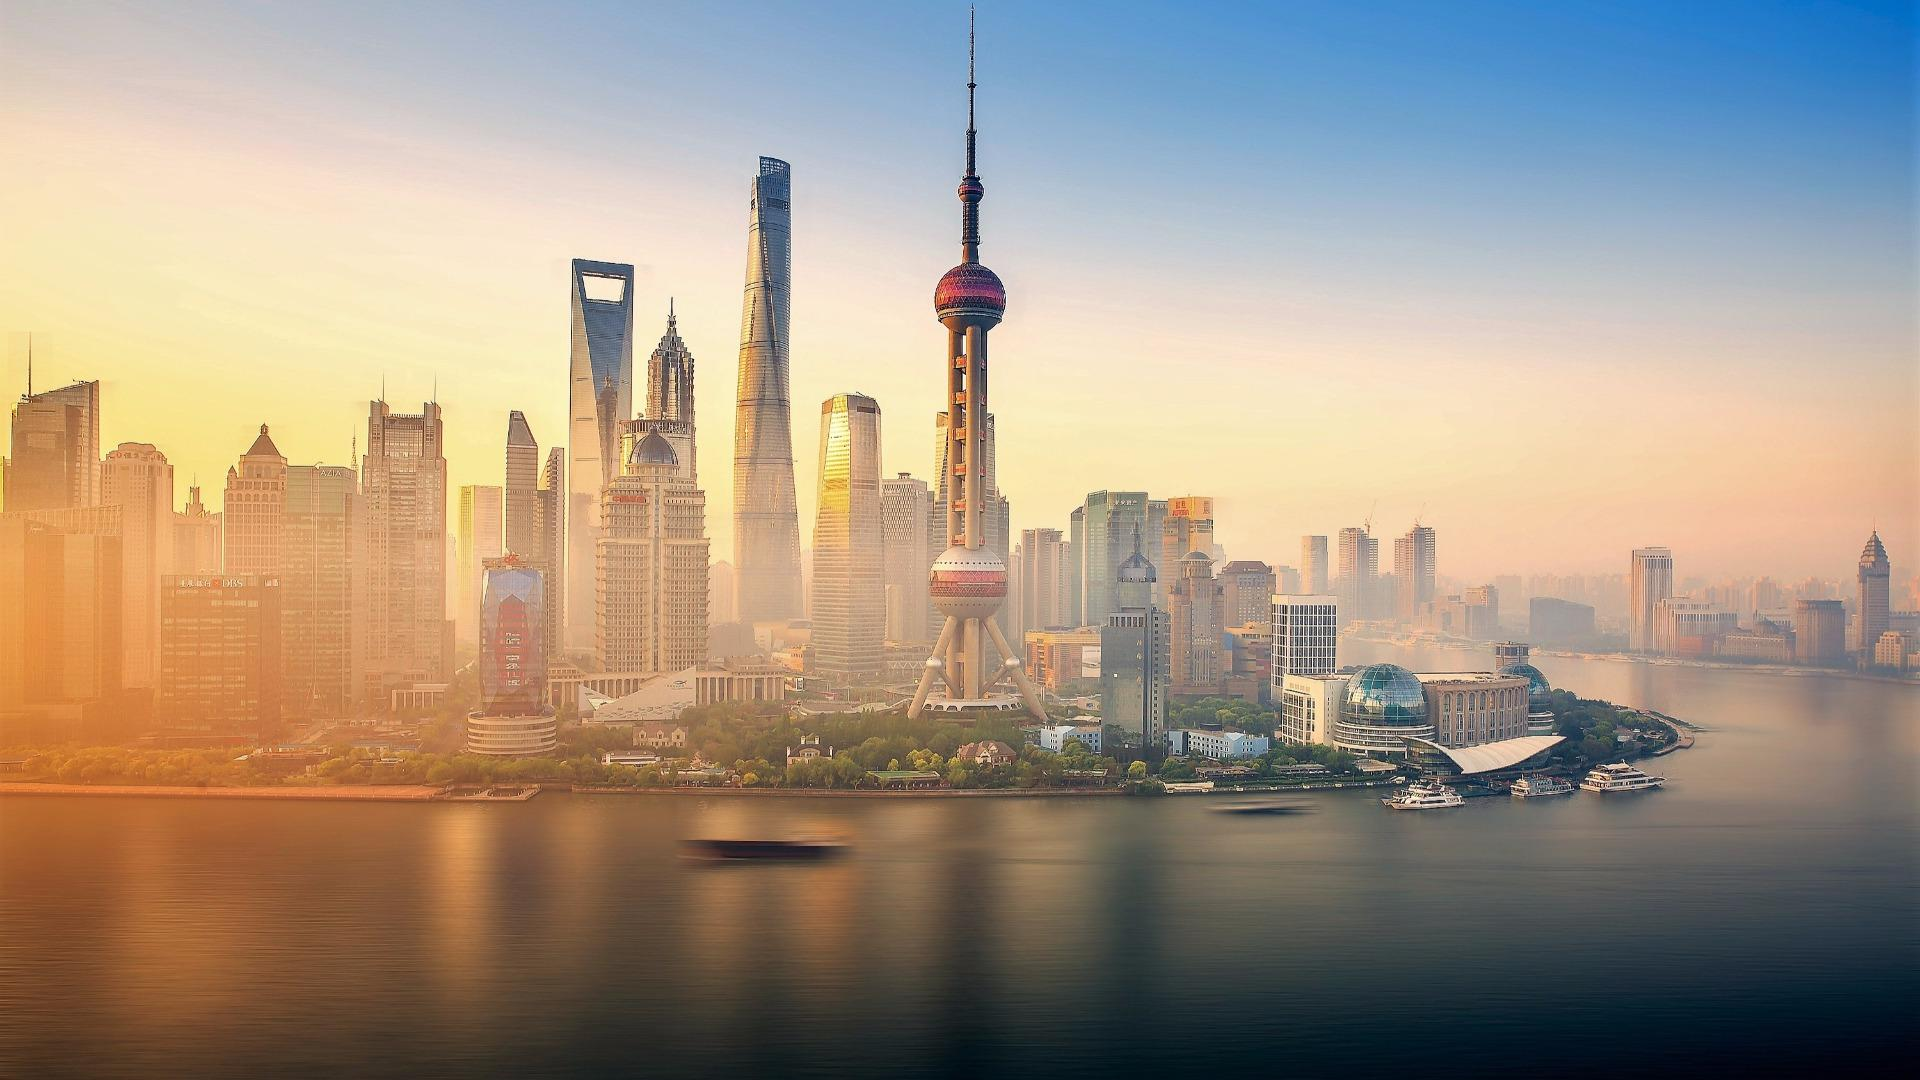 Shanghai Wallpapers - Top Free Shanghai Backgrounds - WallpaperAccess